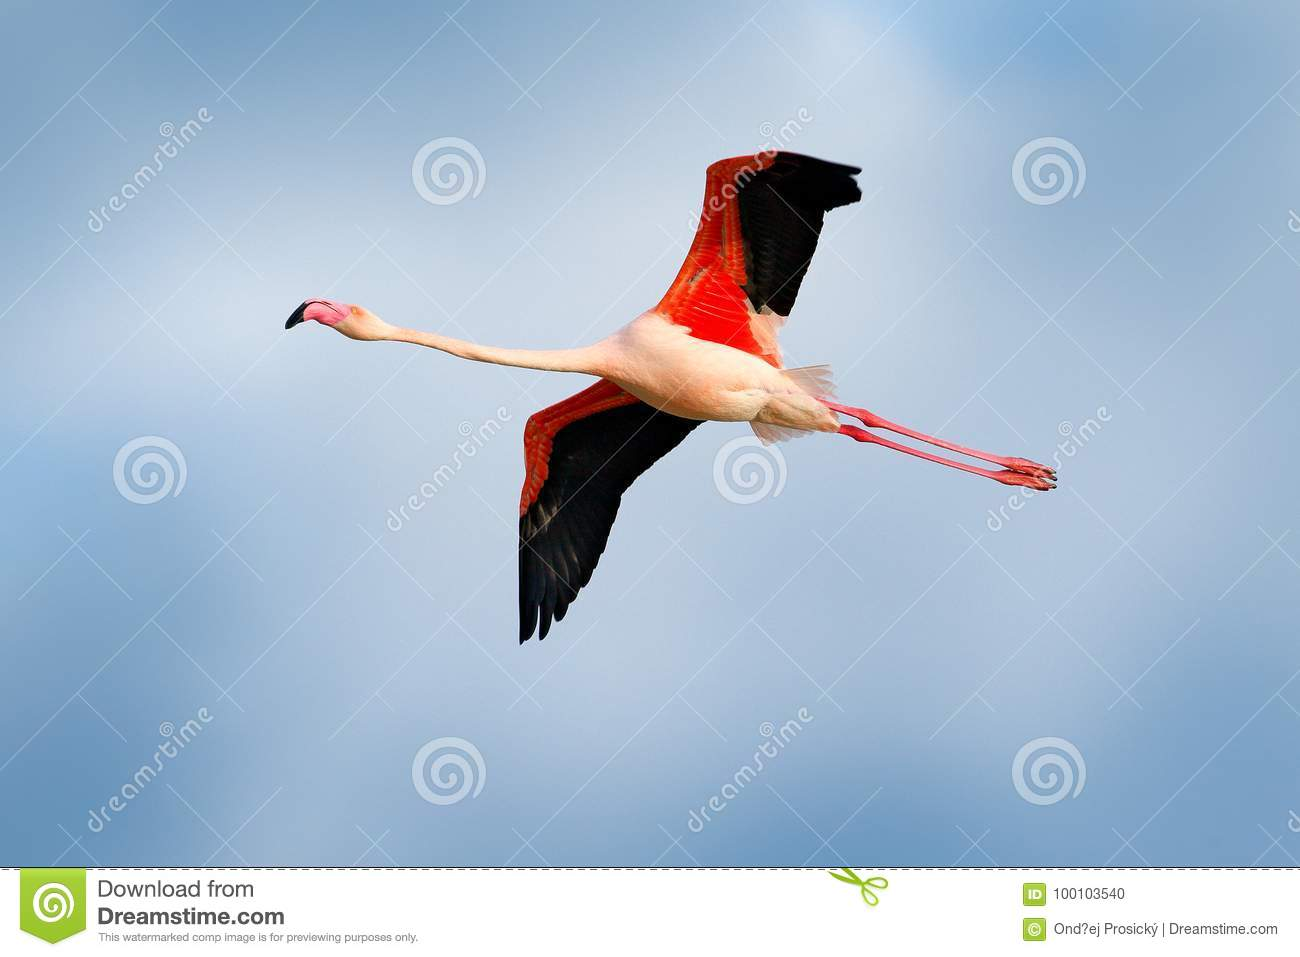 Flamingo in fly. Pink bird on the blue. Action wildlife scene from nature. Nature travel in France. Flying Greater Flamingo, Phoen